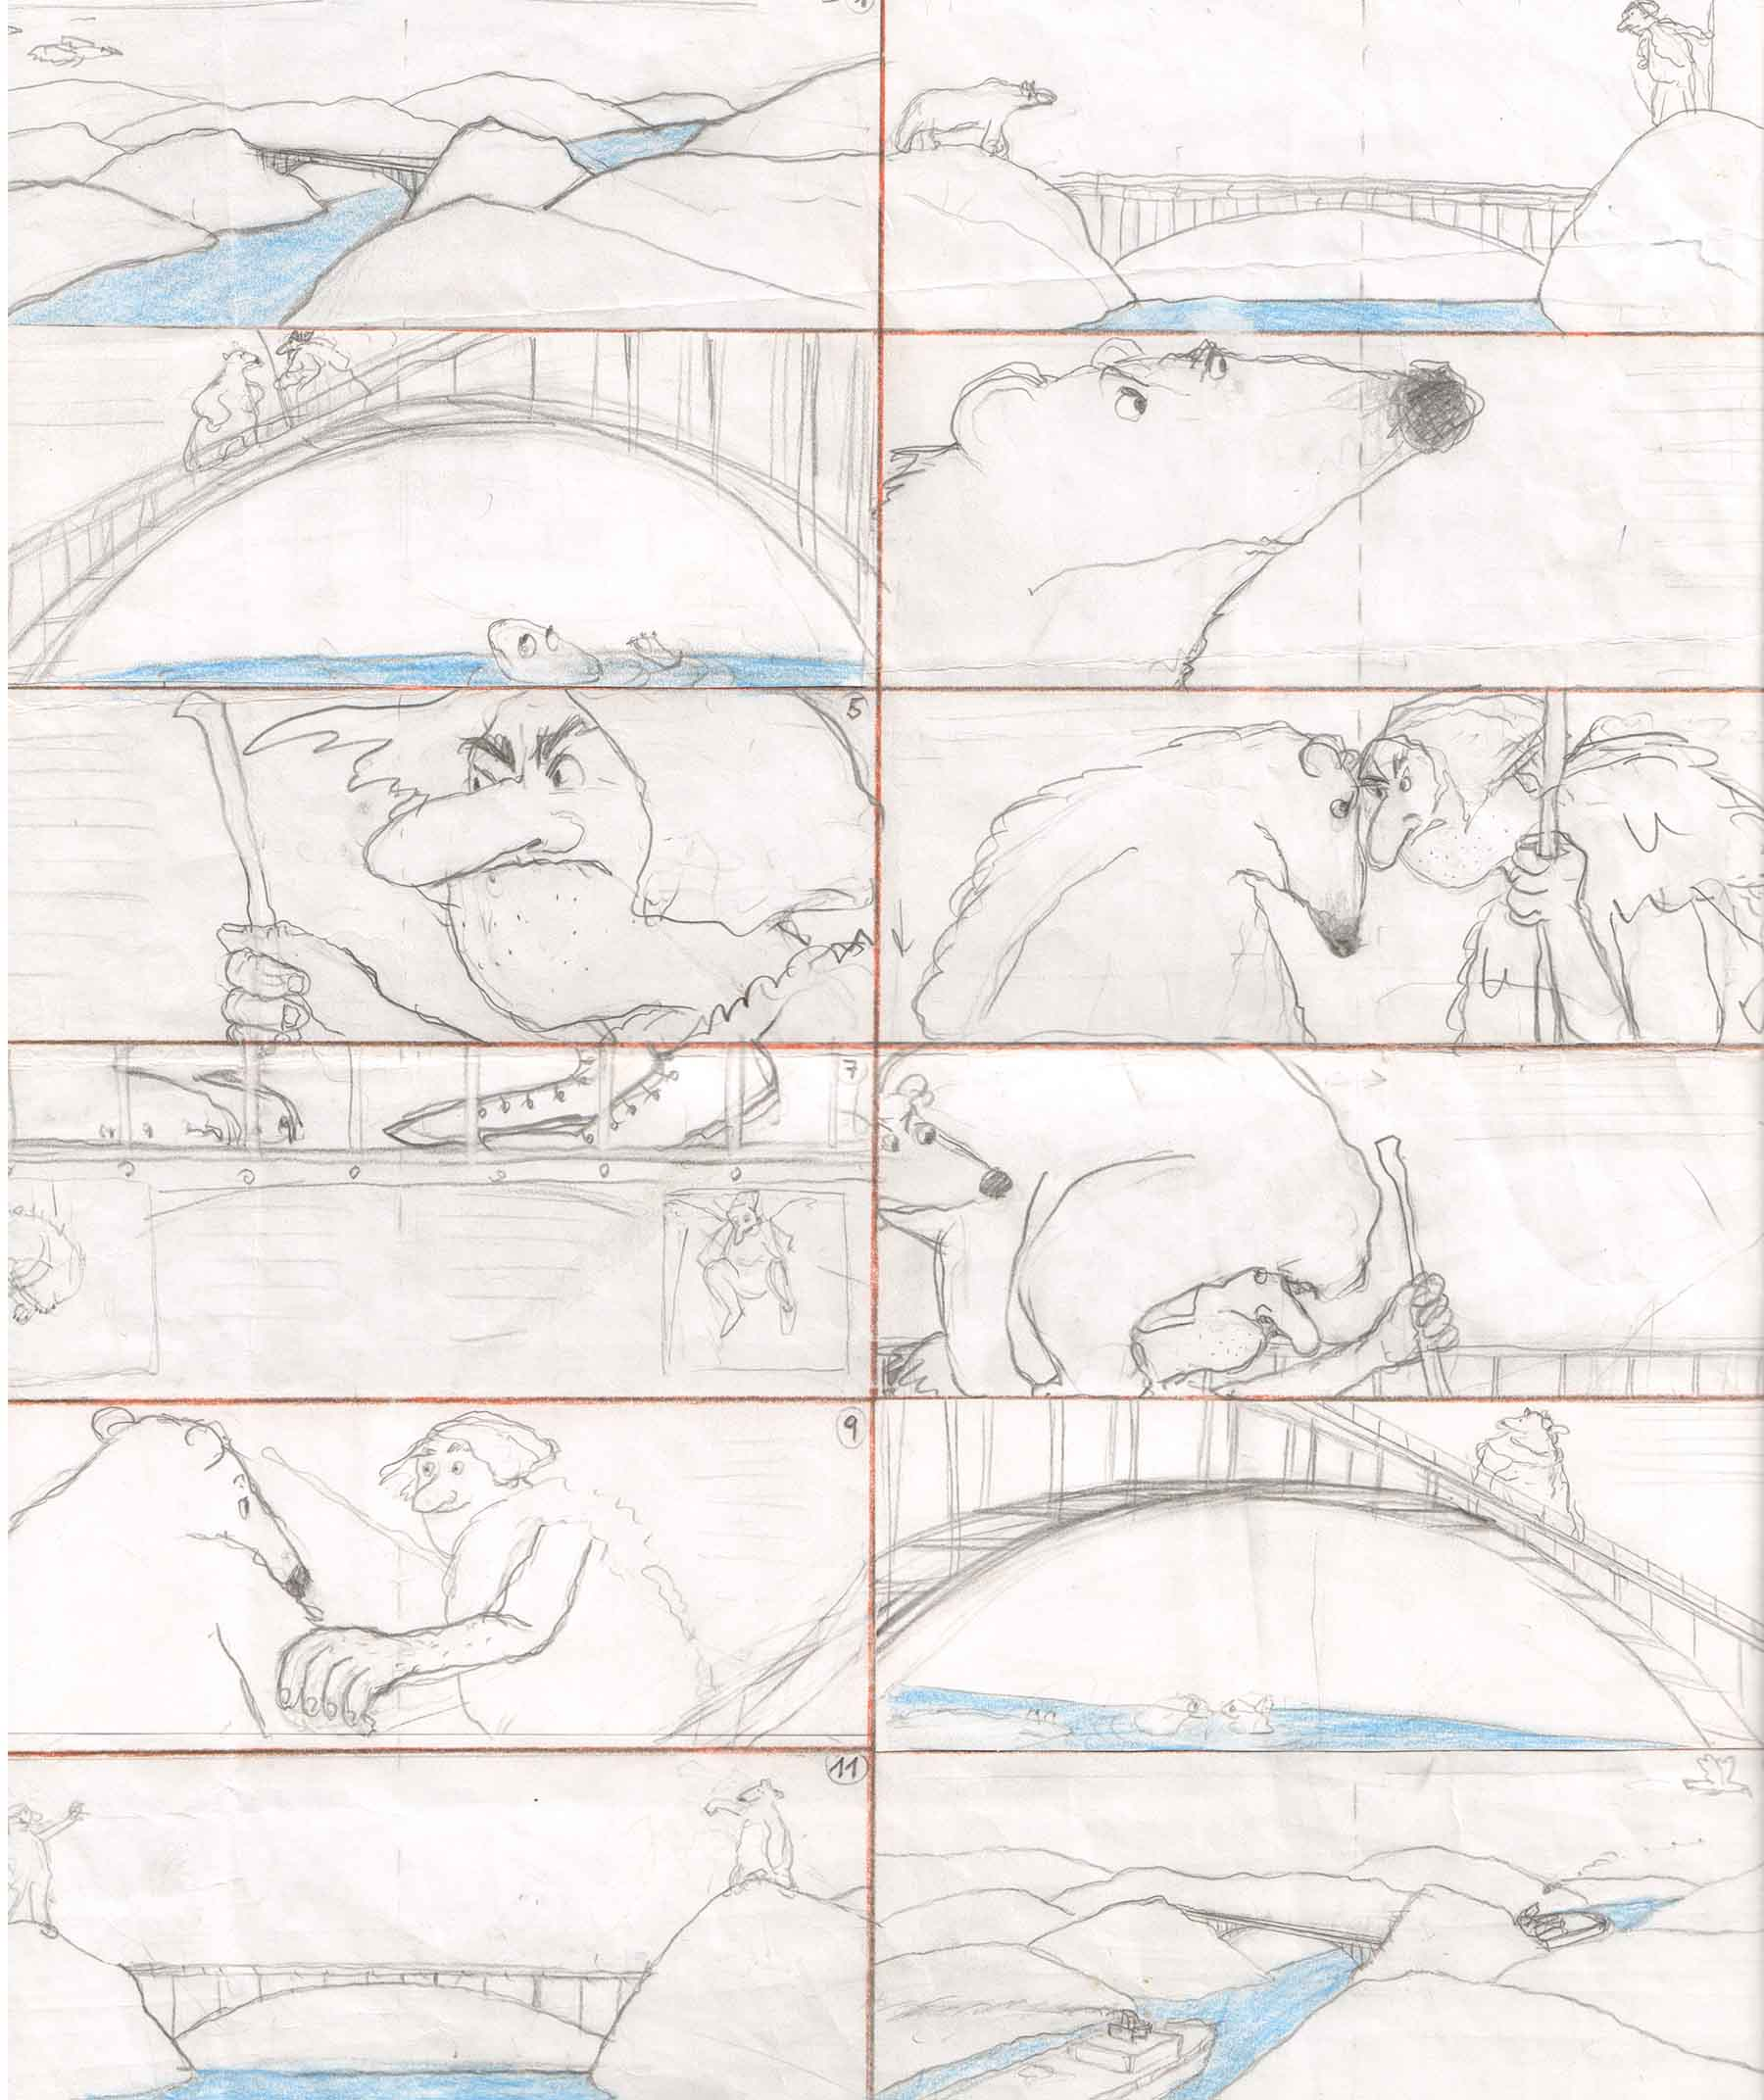 Storyboard sketches from   The Bridge,   Helga Bansch